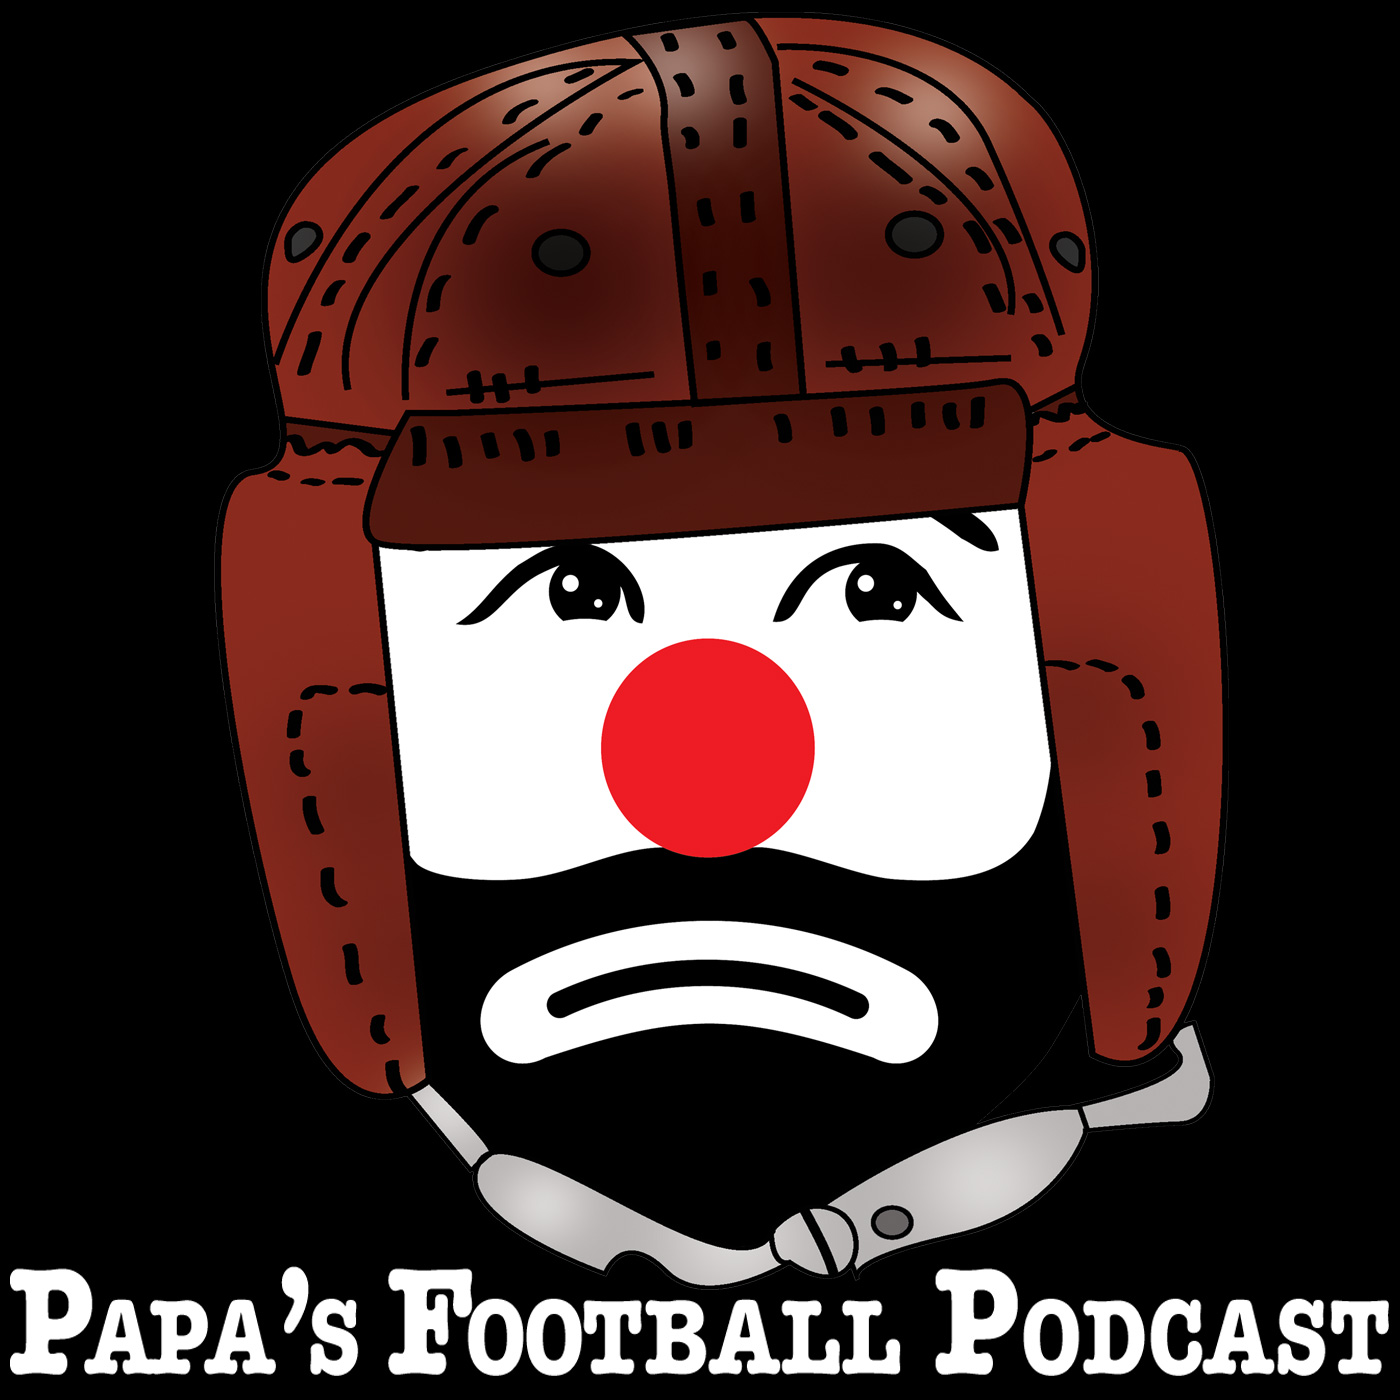 Papa's Football Podcast